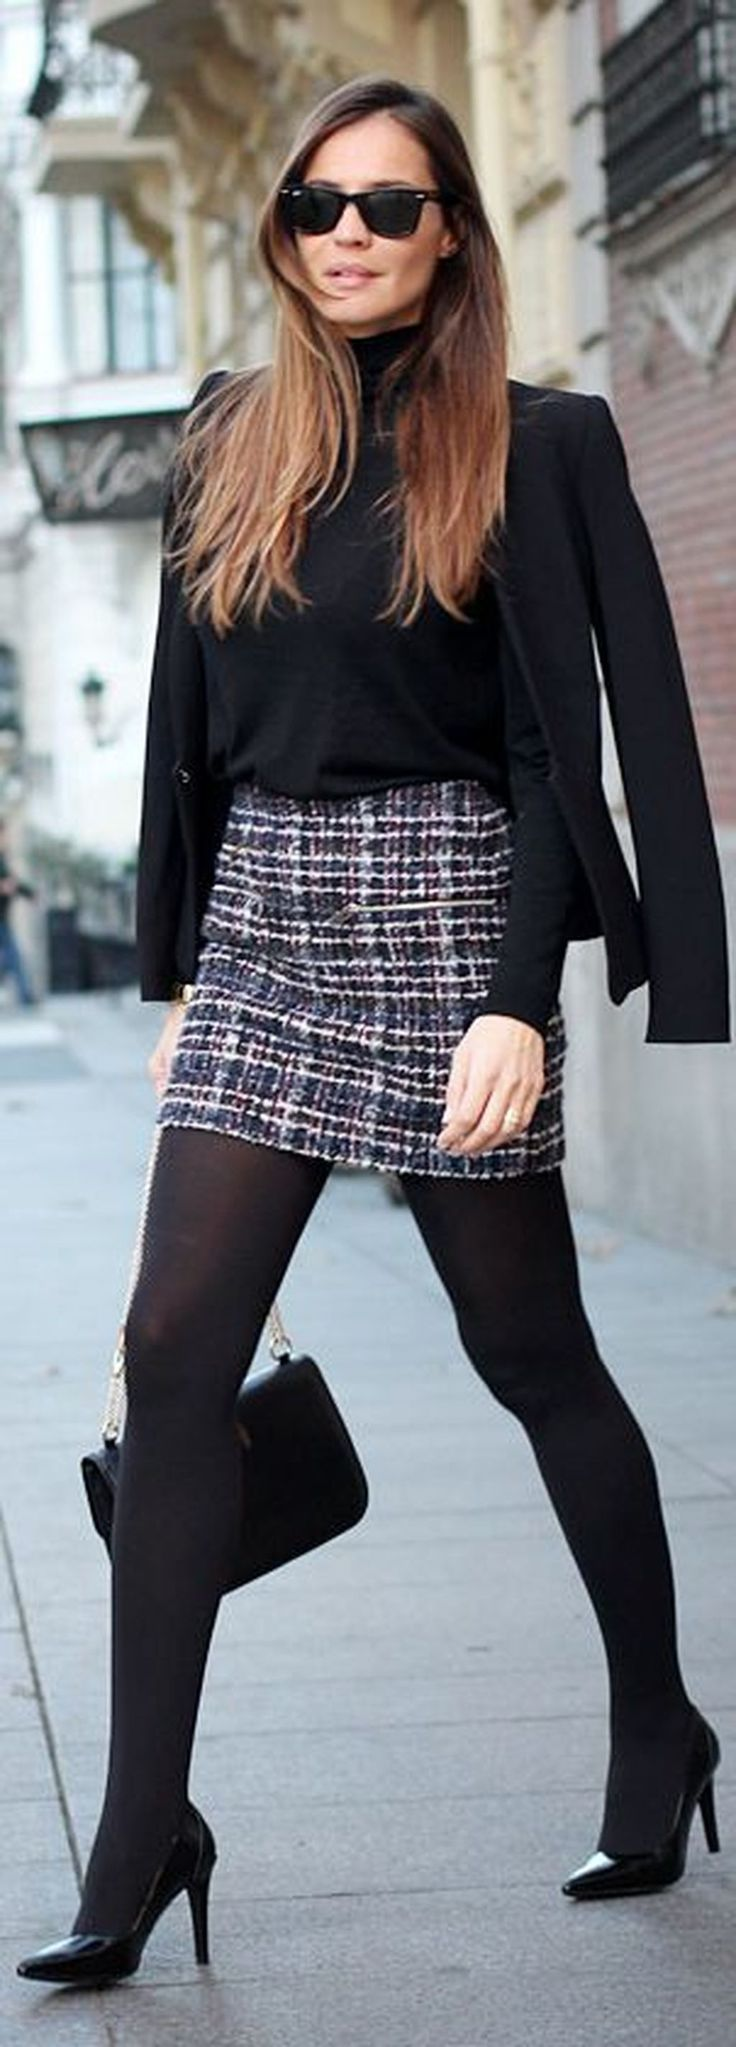 Cool 64 Stunning Women Work Outfits Ideas Trends for This Winter. More at http://aksahinjewelry.com/2017/10/10/64-stunning-women-work-outfits-ideas-trends-winter/ #womenclothingwinter